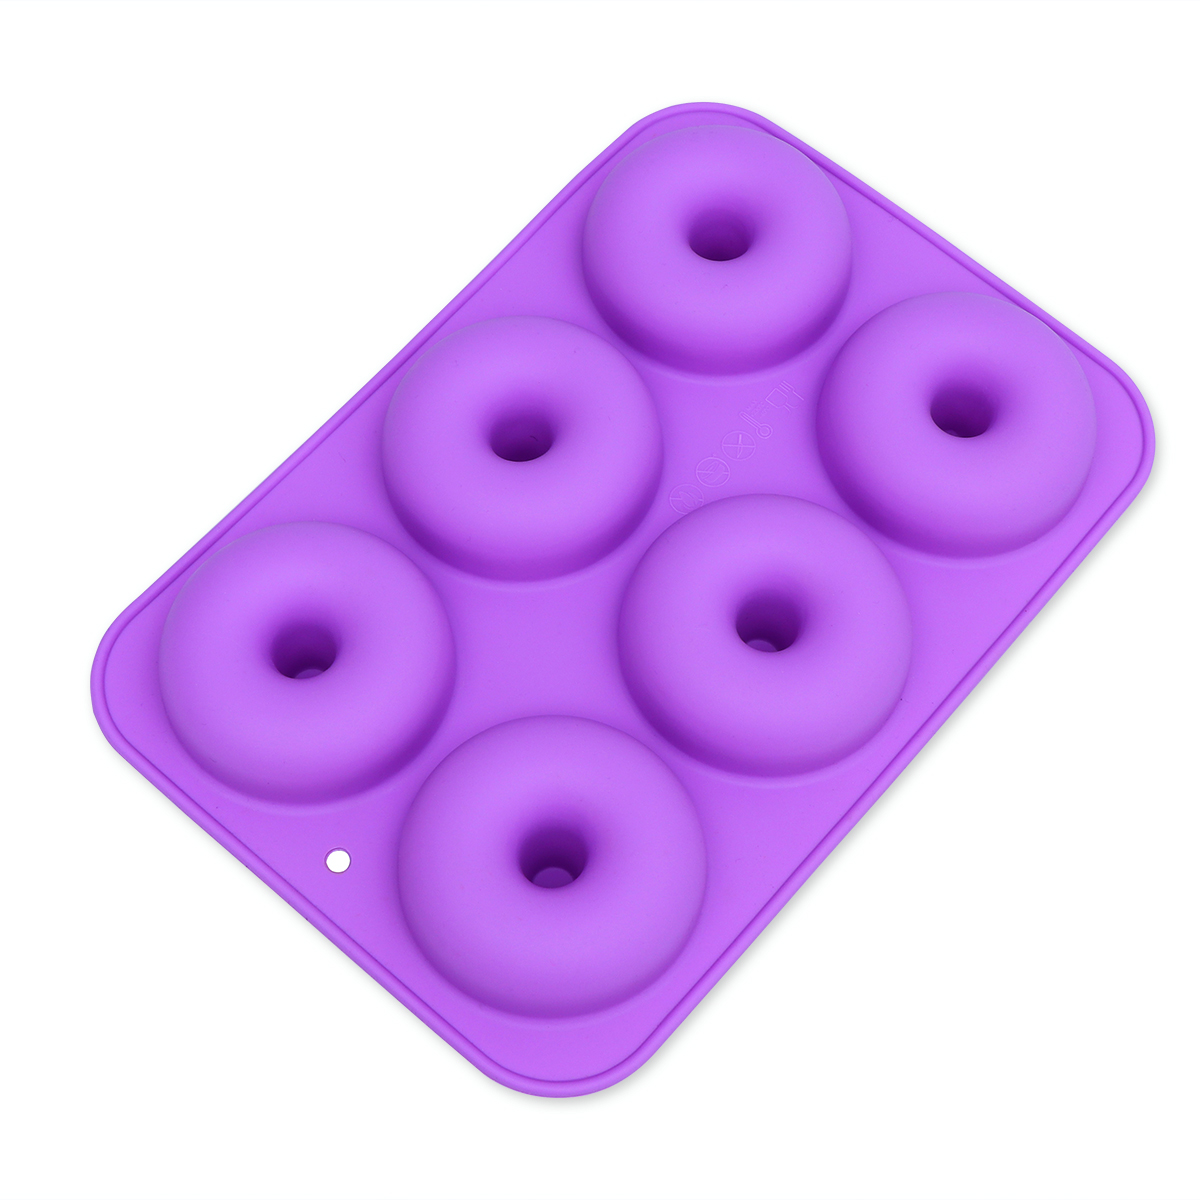 Click here to buy 6-Cavity Silicone Donut Baking Pan Non-Stick Donut Mold Safe Baking Tray Maker for Cake Biscuit Bagels Muffins (Light Purple).